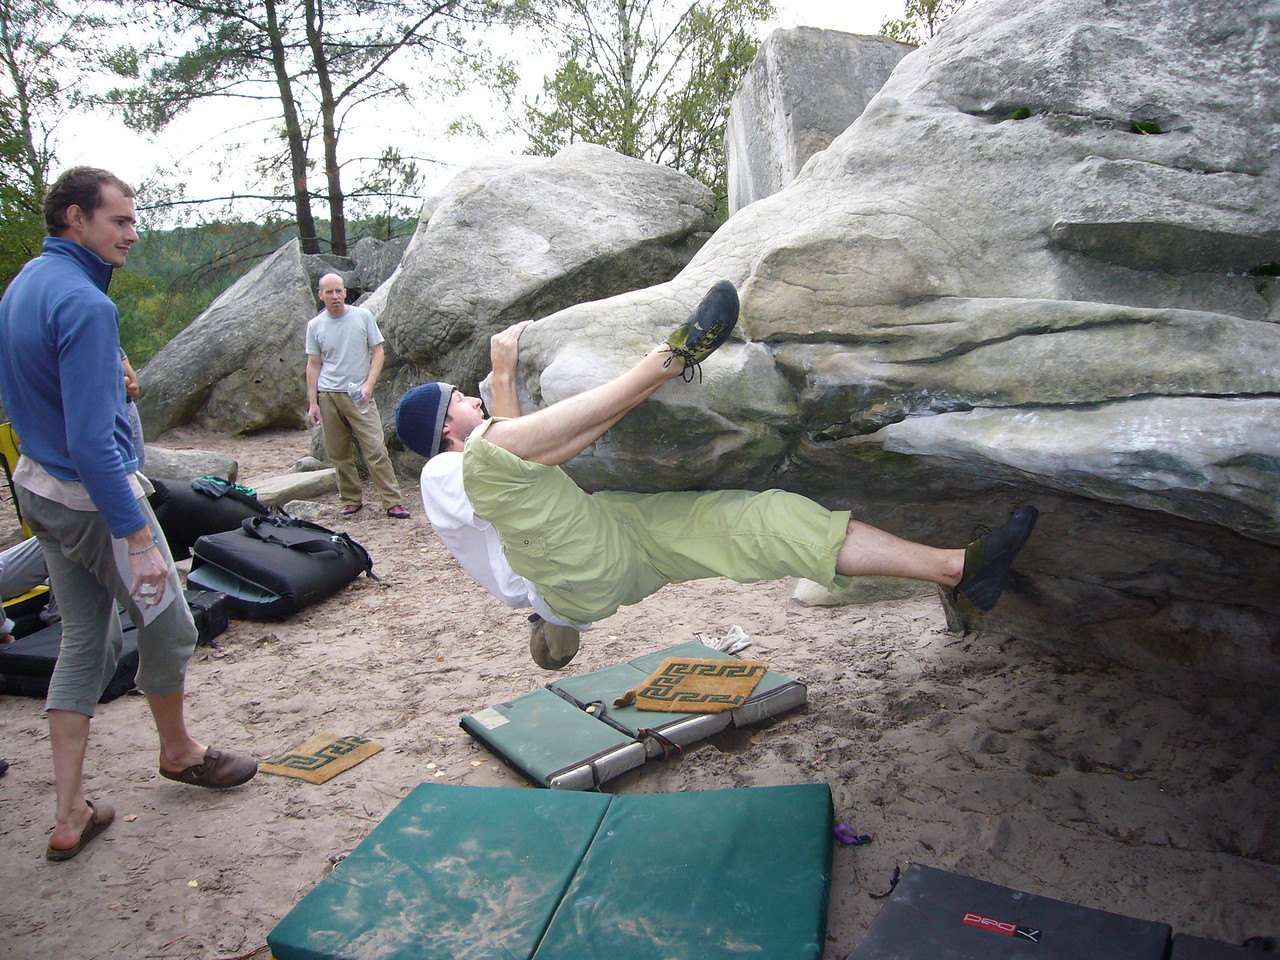 Lots of heel hooking and slapping gets you around this rock then feet go the other direction, grab higher holds and topout.